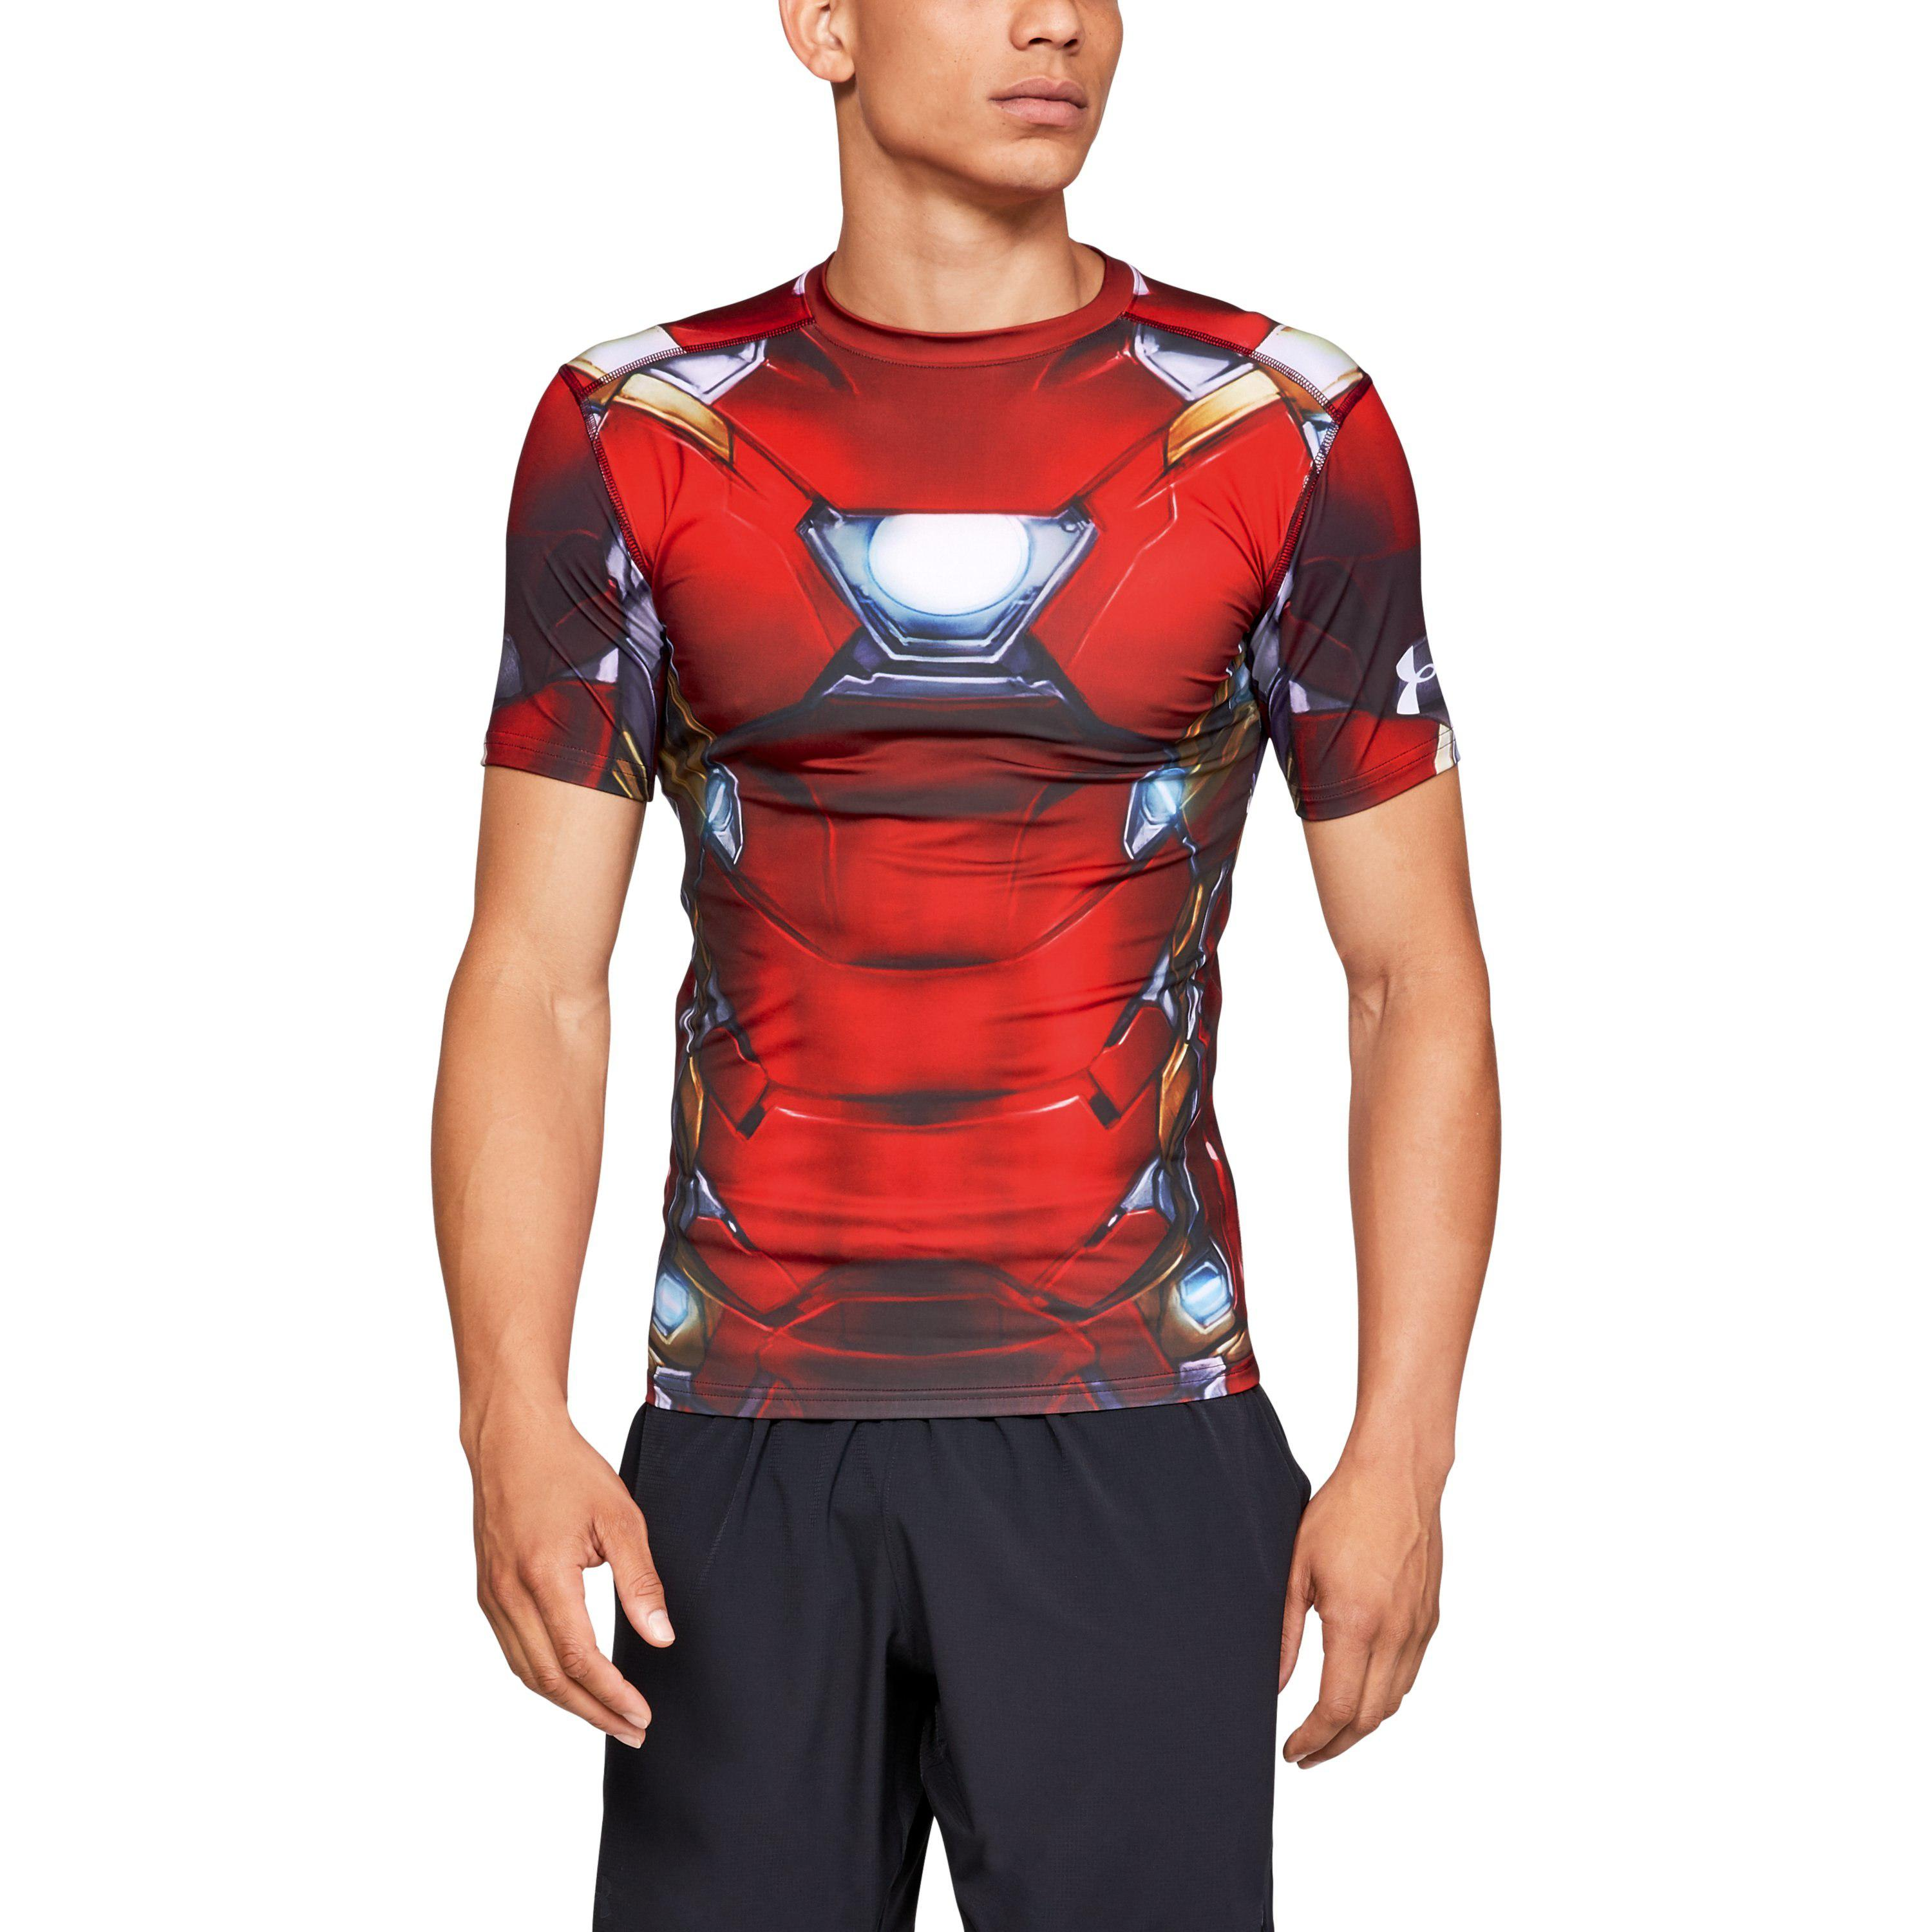 f7d6493f Under Armour Mens Alter Ego Compression T Shirt Iron Man ...